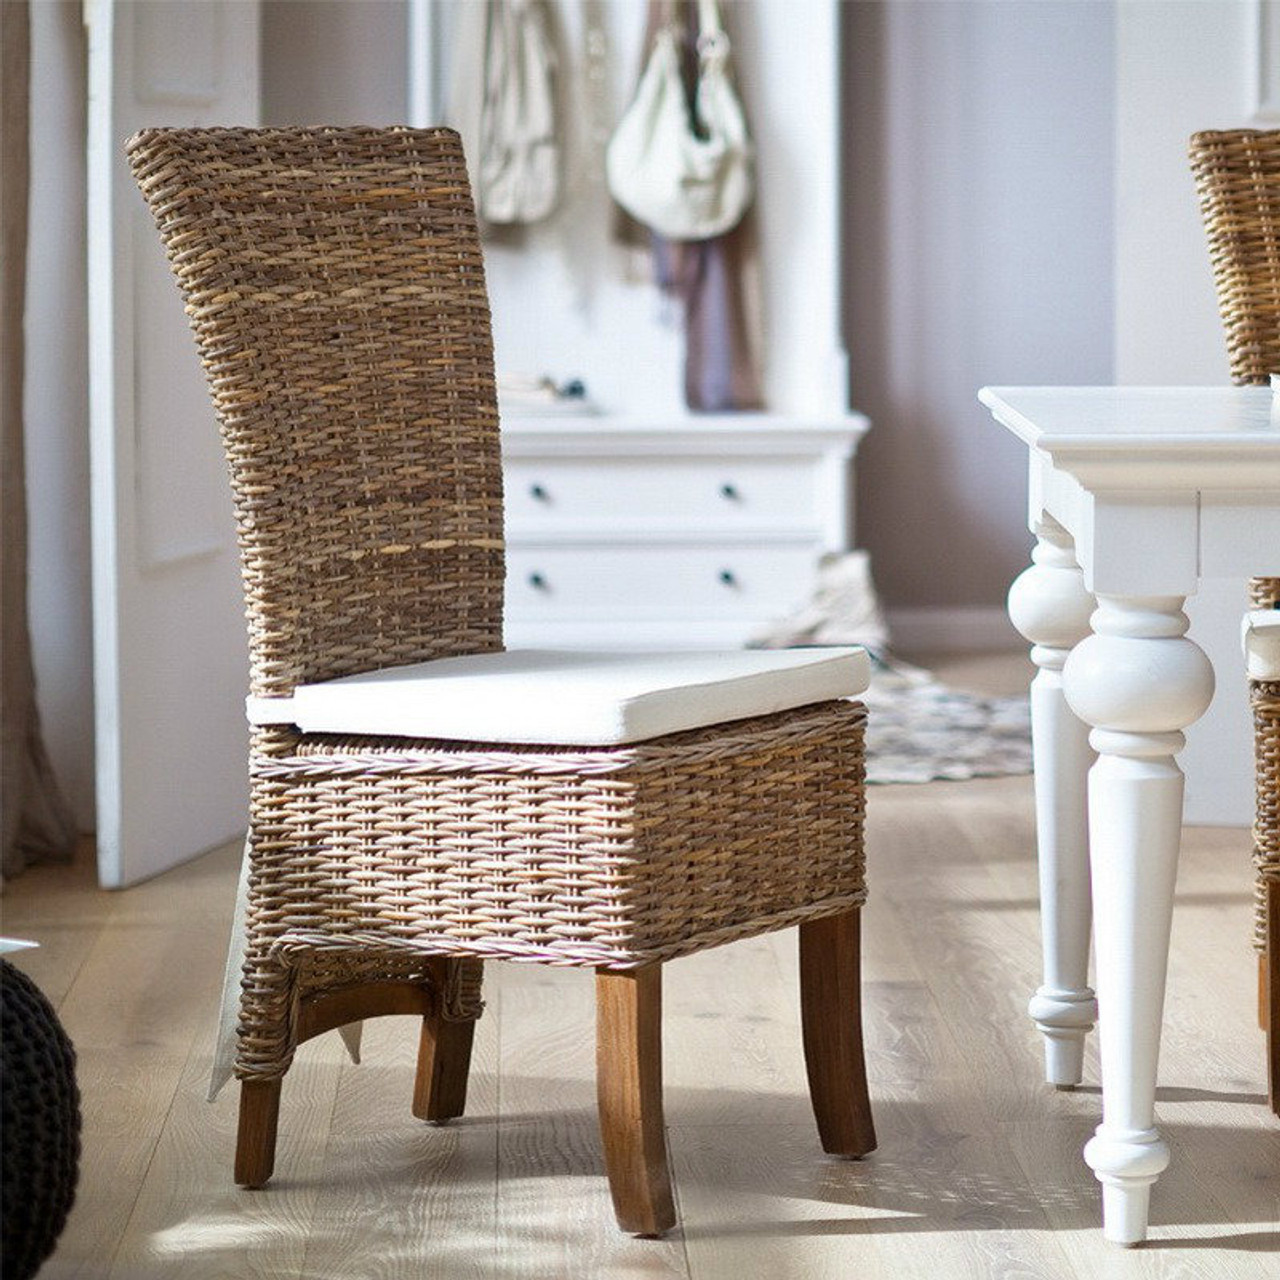 Wondrous Shore Coastal Wicker Dining Chair With Cushion Caraccident5 Cool Chair Designs And Ideas Caraccident5Info